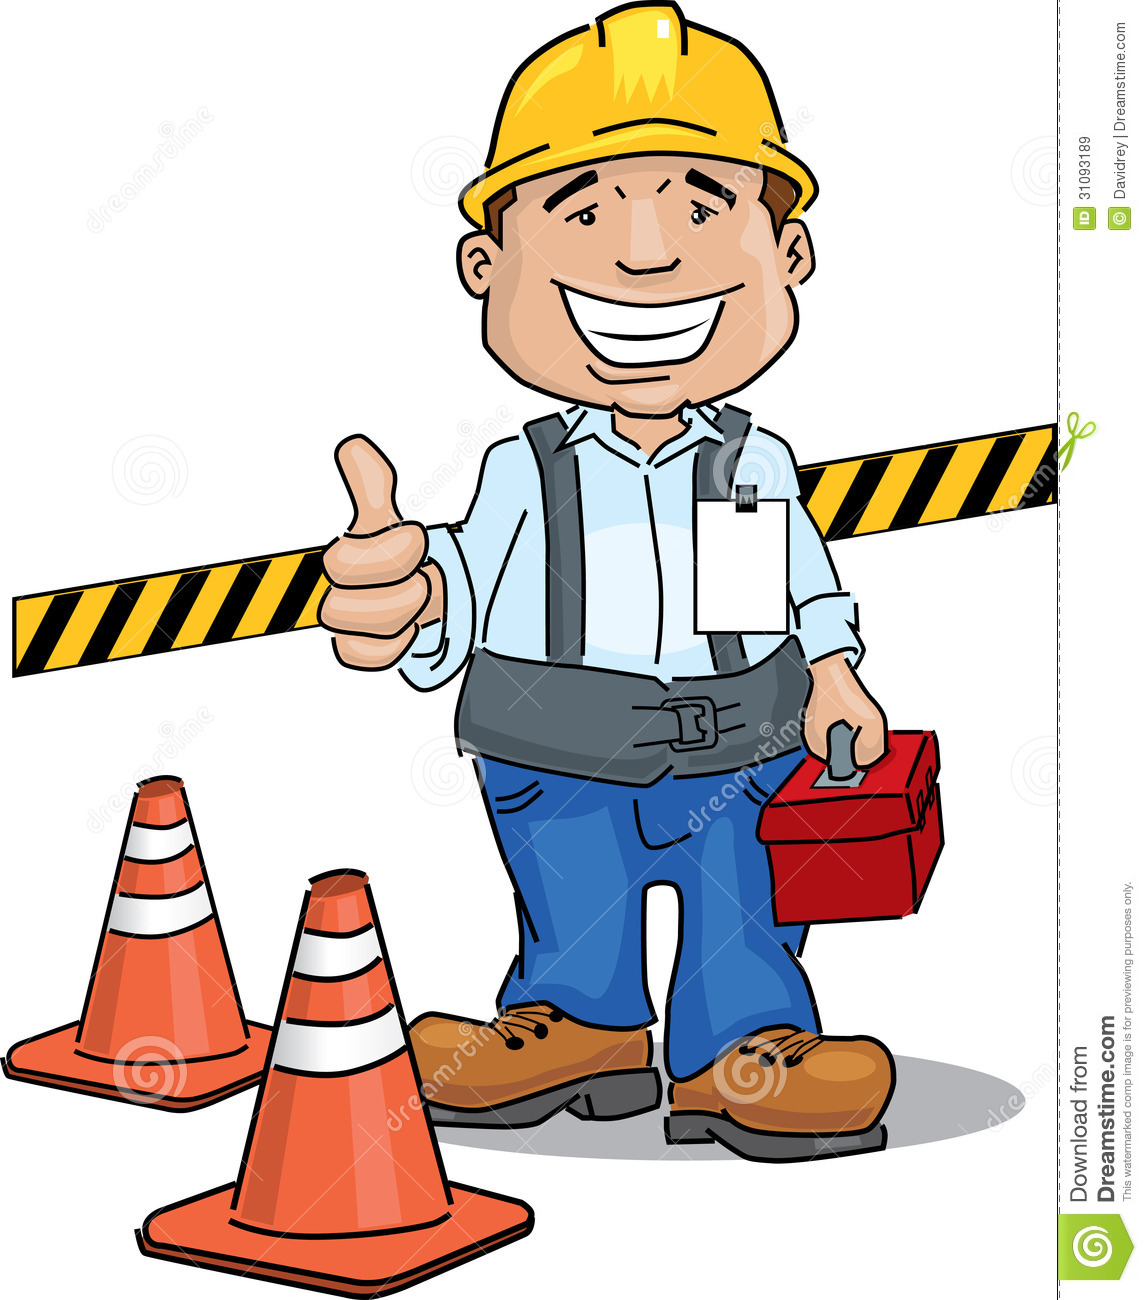 worker clipart clipart suggest construction clip art free images under construction clipart free download